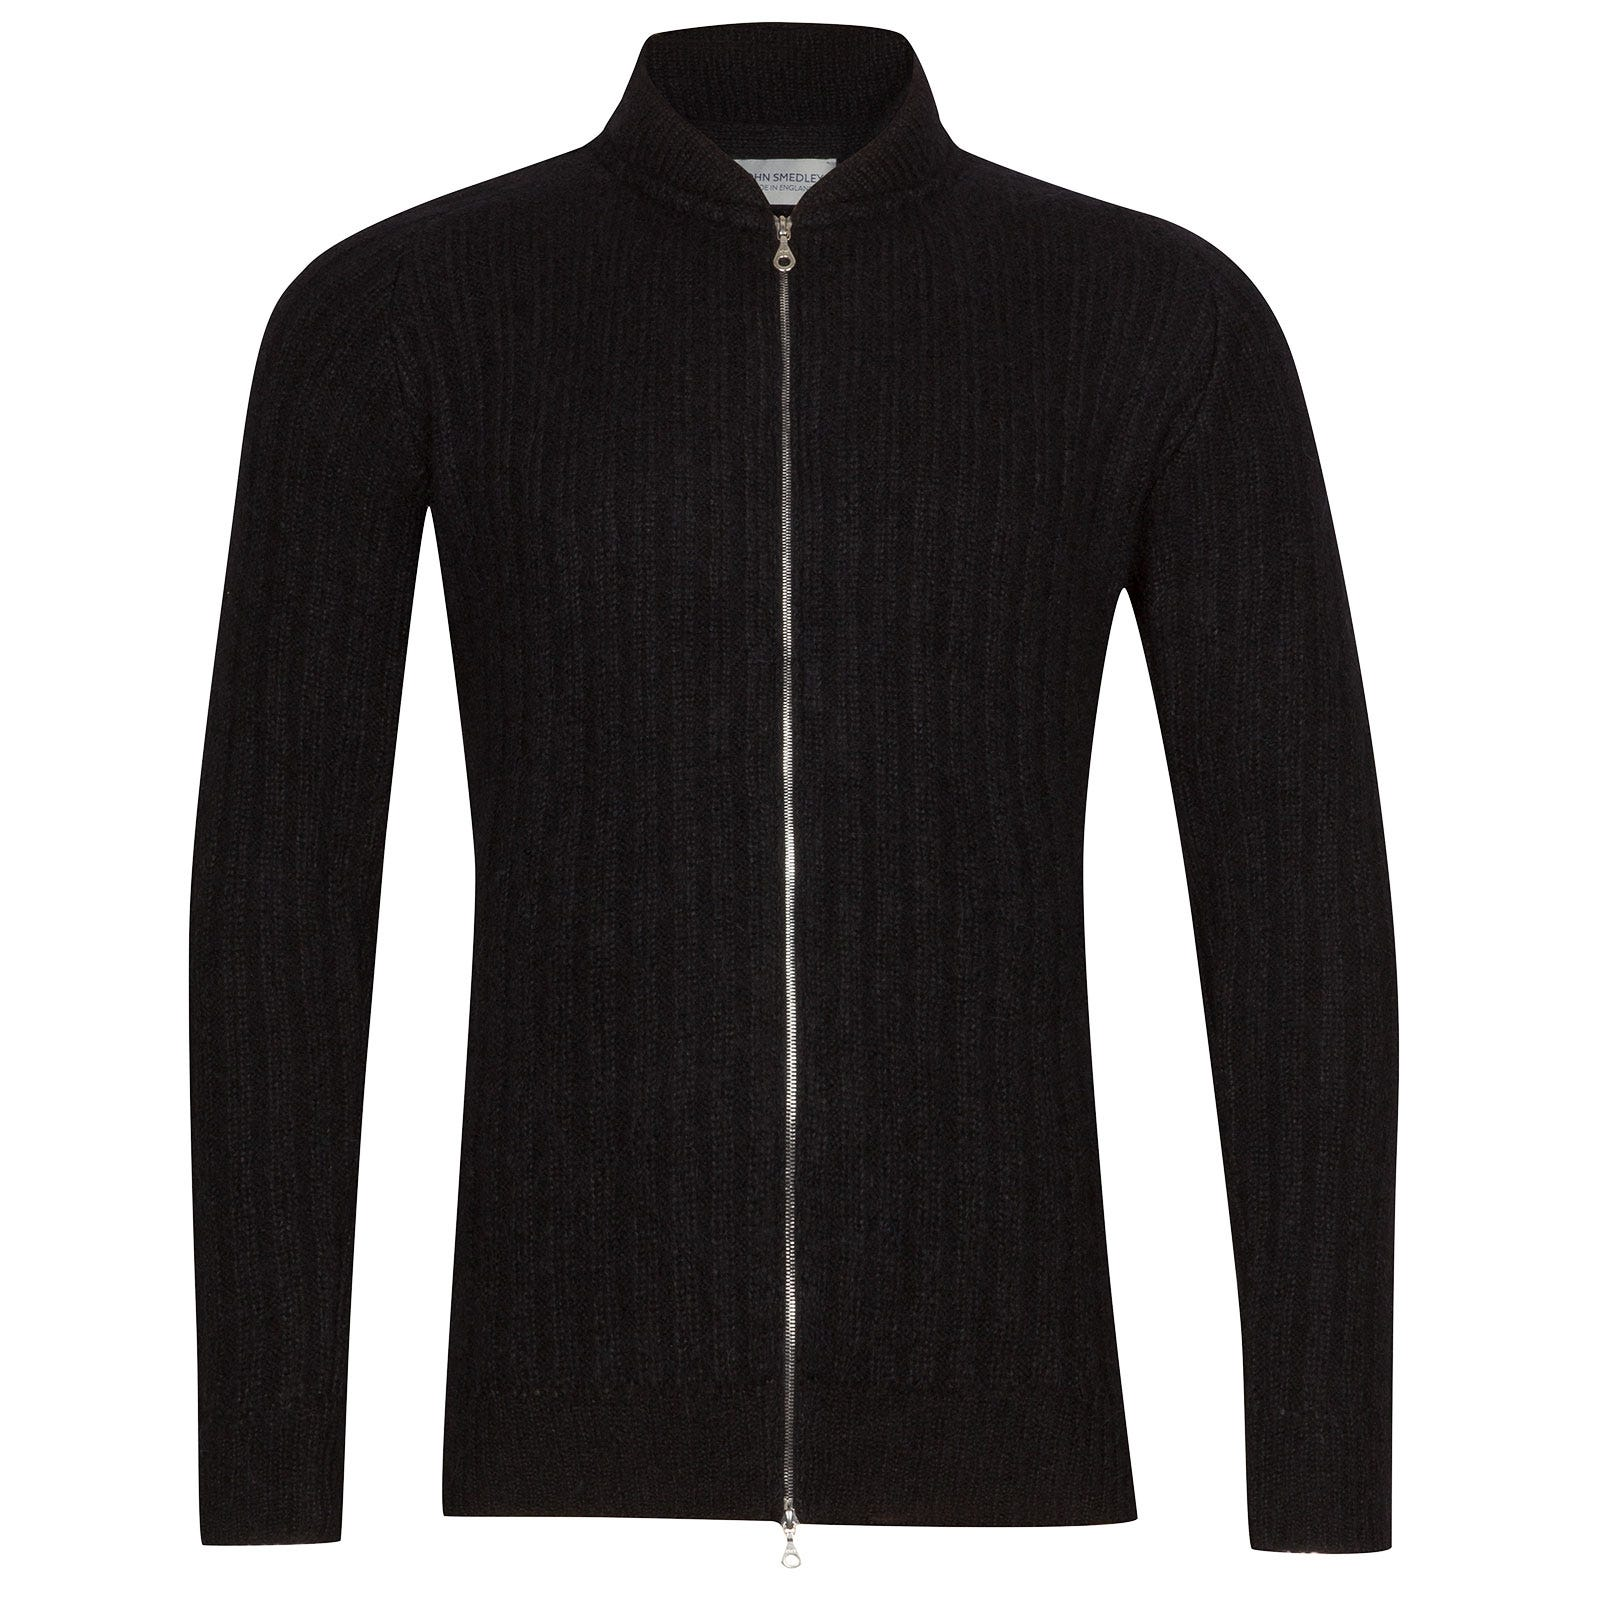 John Smedley Power Viscose Blend Jacket In Black-XL